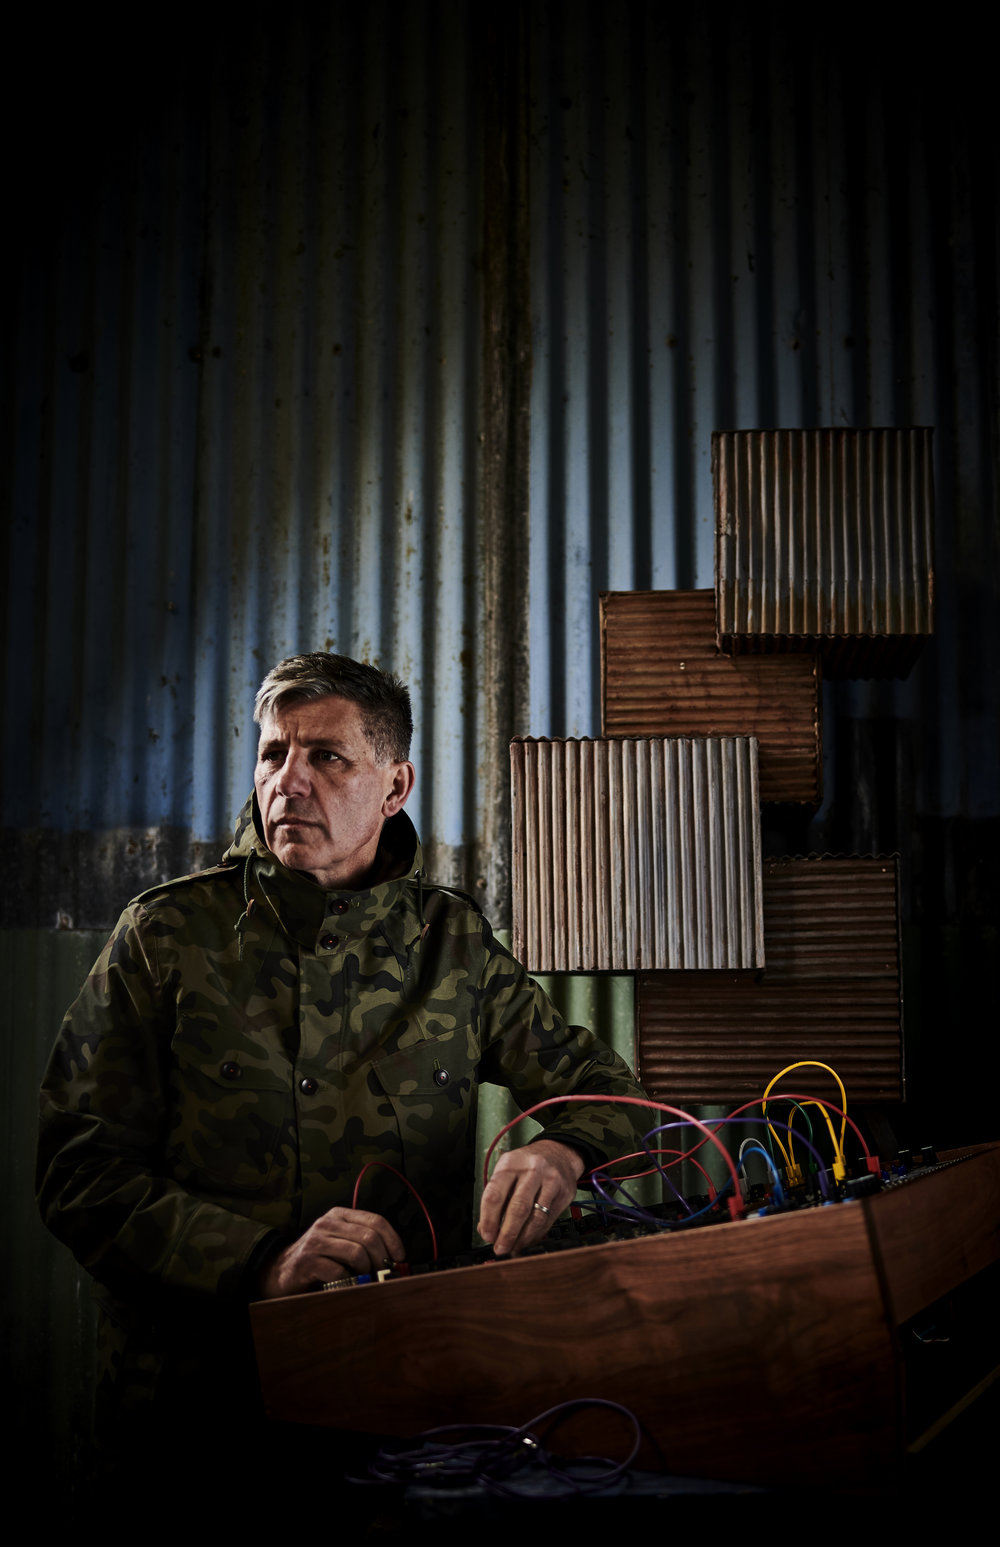 Chris Whitten, legendary drummer, modular synth authority and downtempo electronic music producer Circles And Ellipses